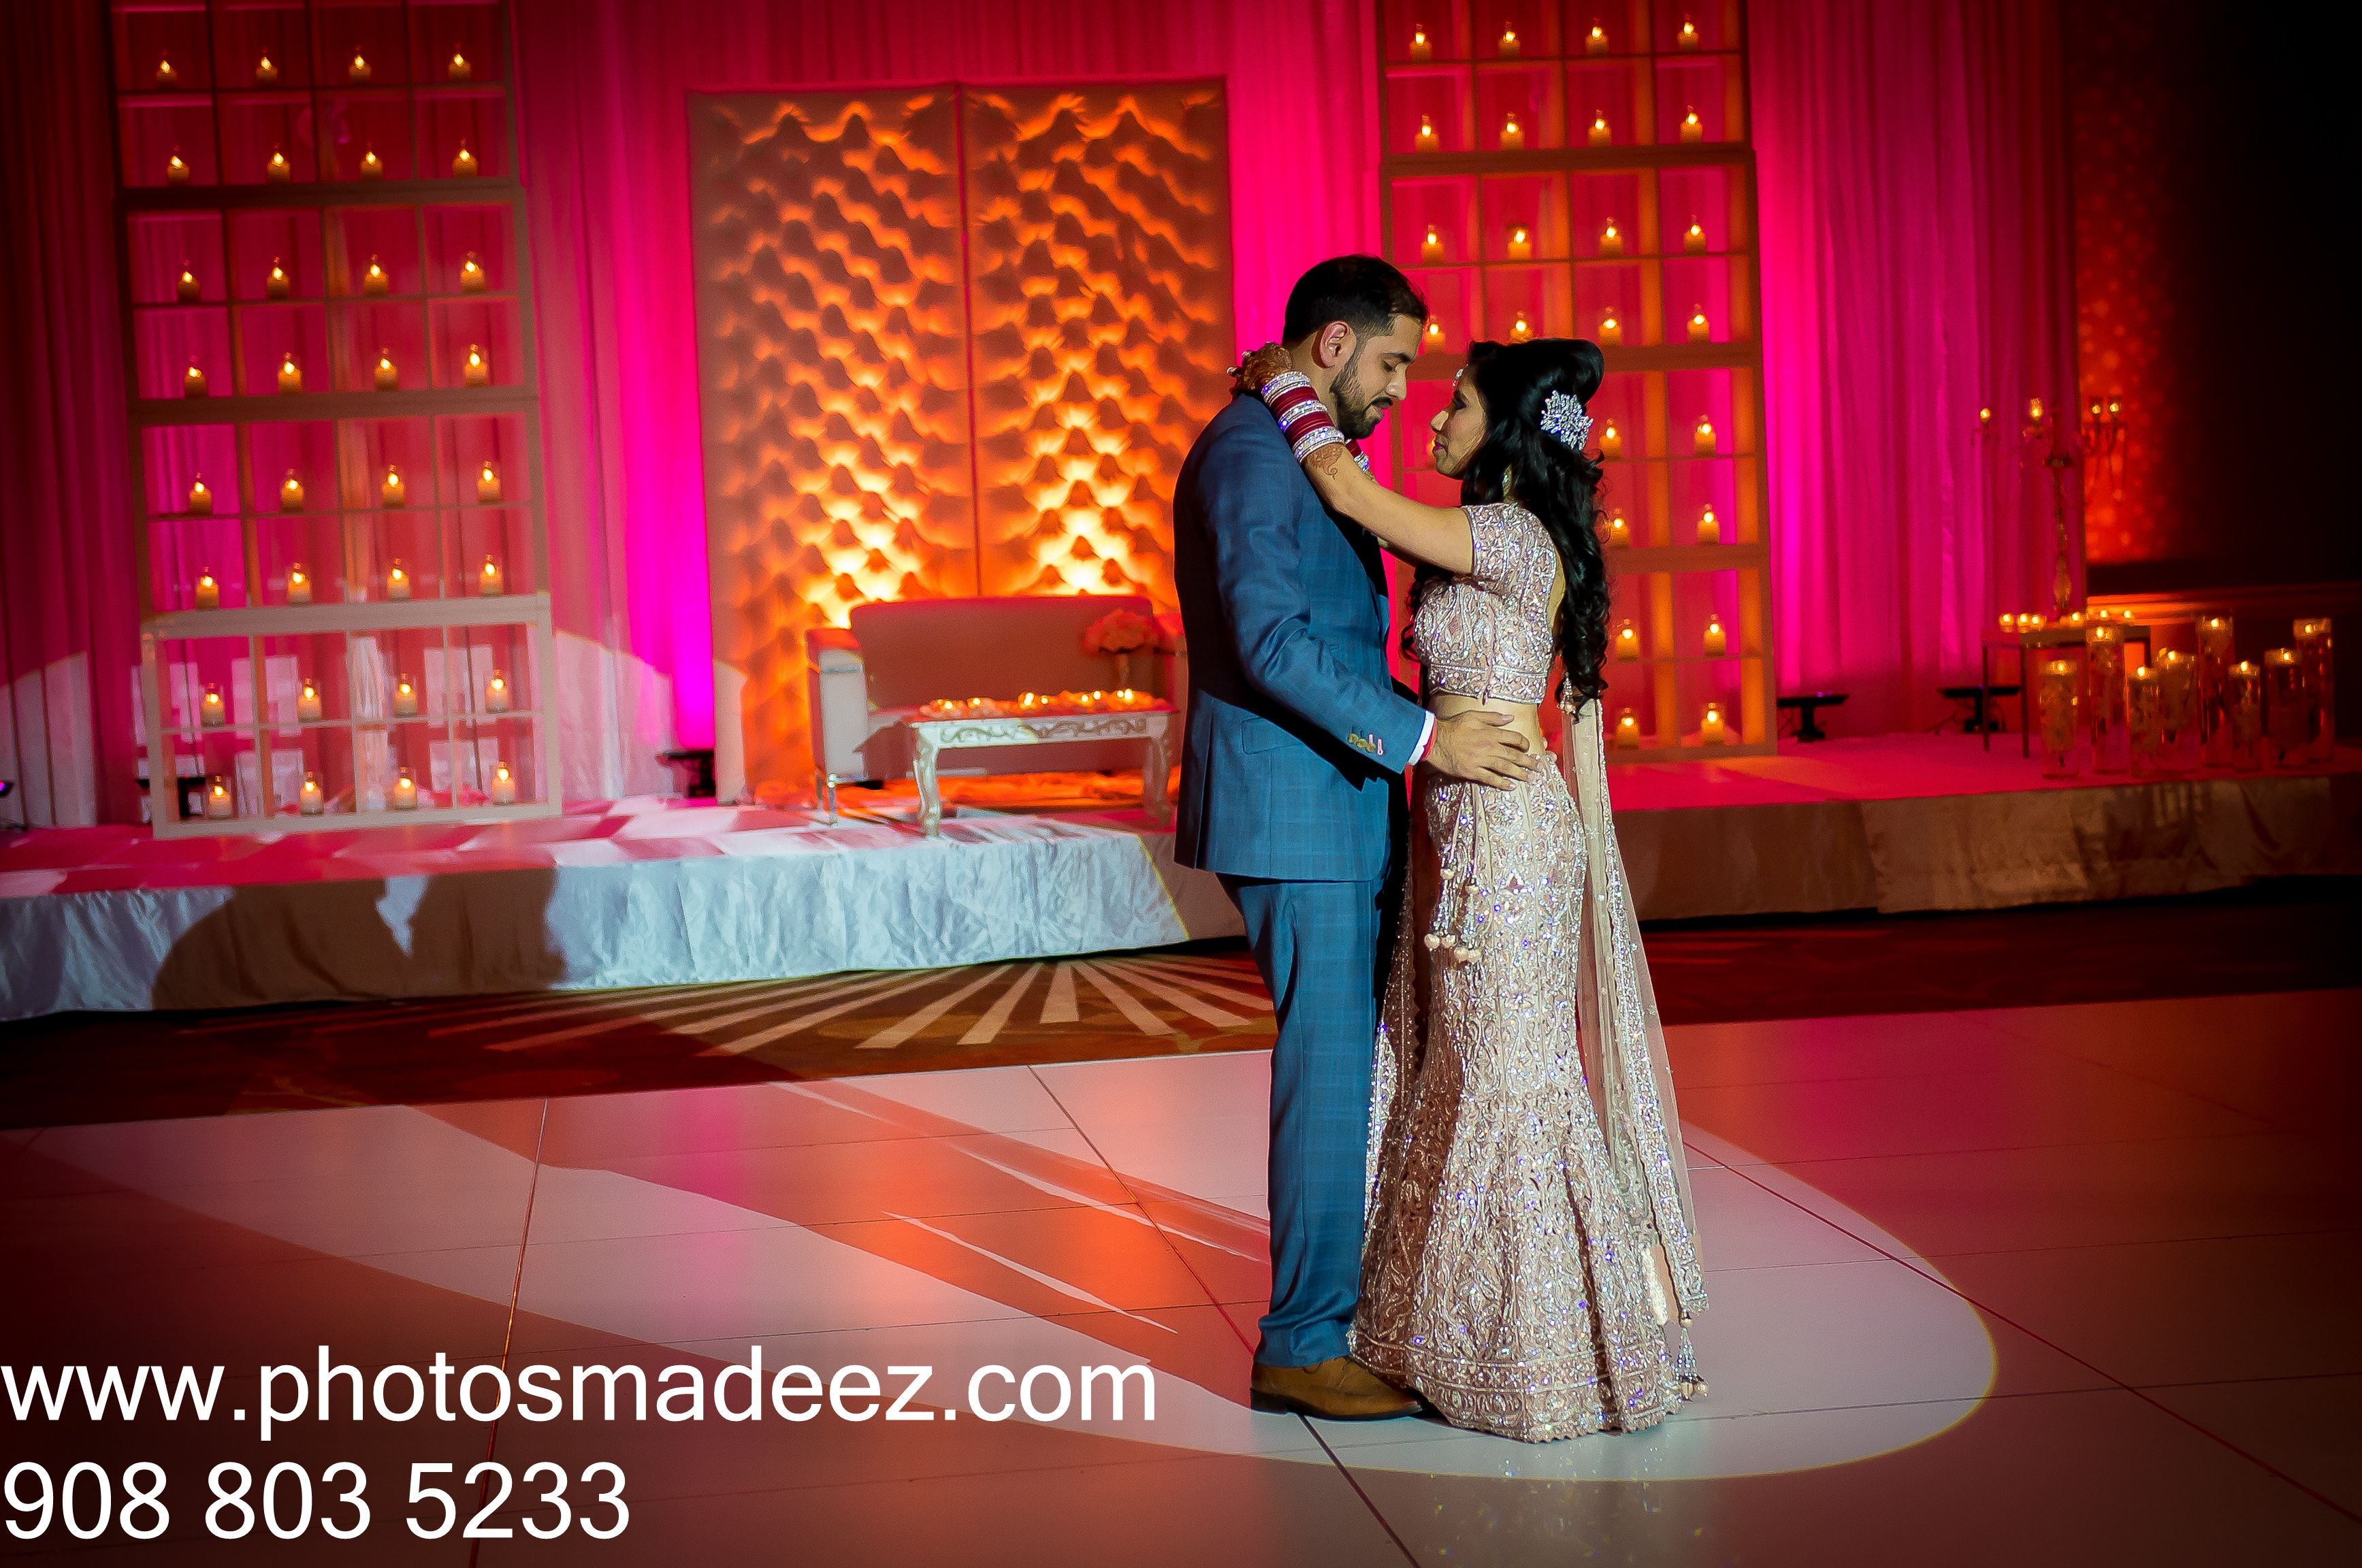 Wedding Reception photo - First Dance for a mixed Wedding at hyatt regency, hauppague in Long Island, NY. With DJ USA. Afghani Bride and Punjabi Groom. Best Wedding Photographer in Long Island, PhotosMadeEz